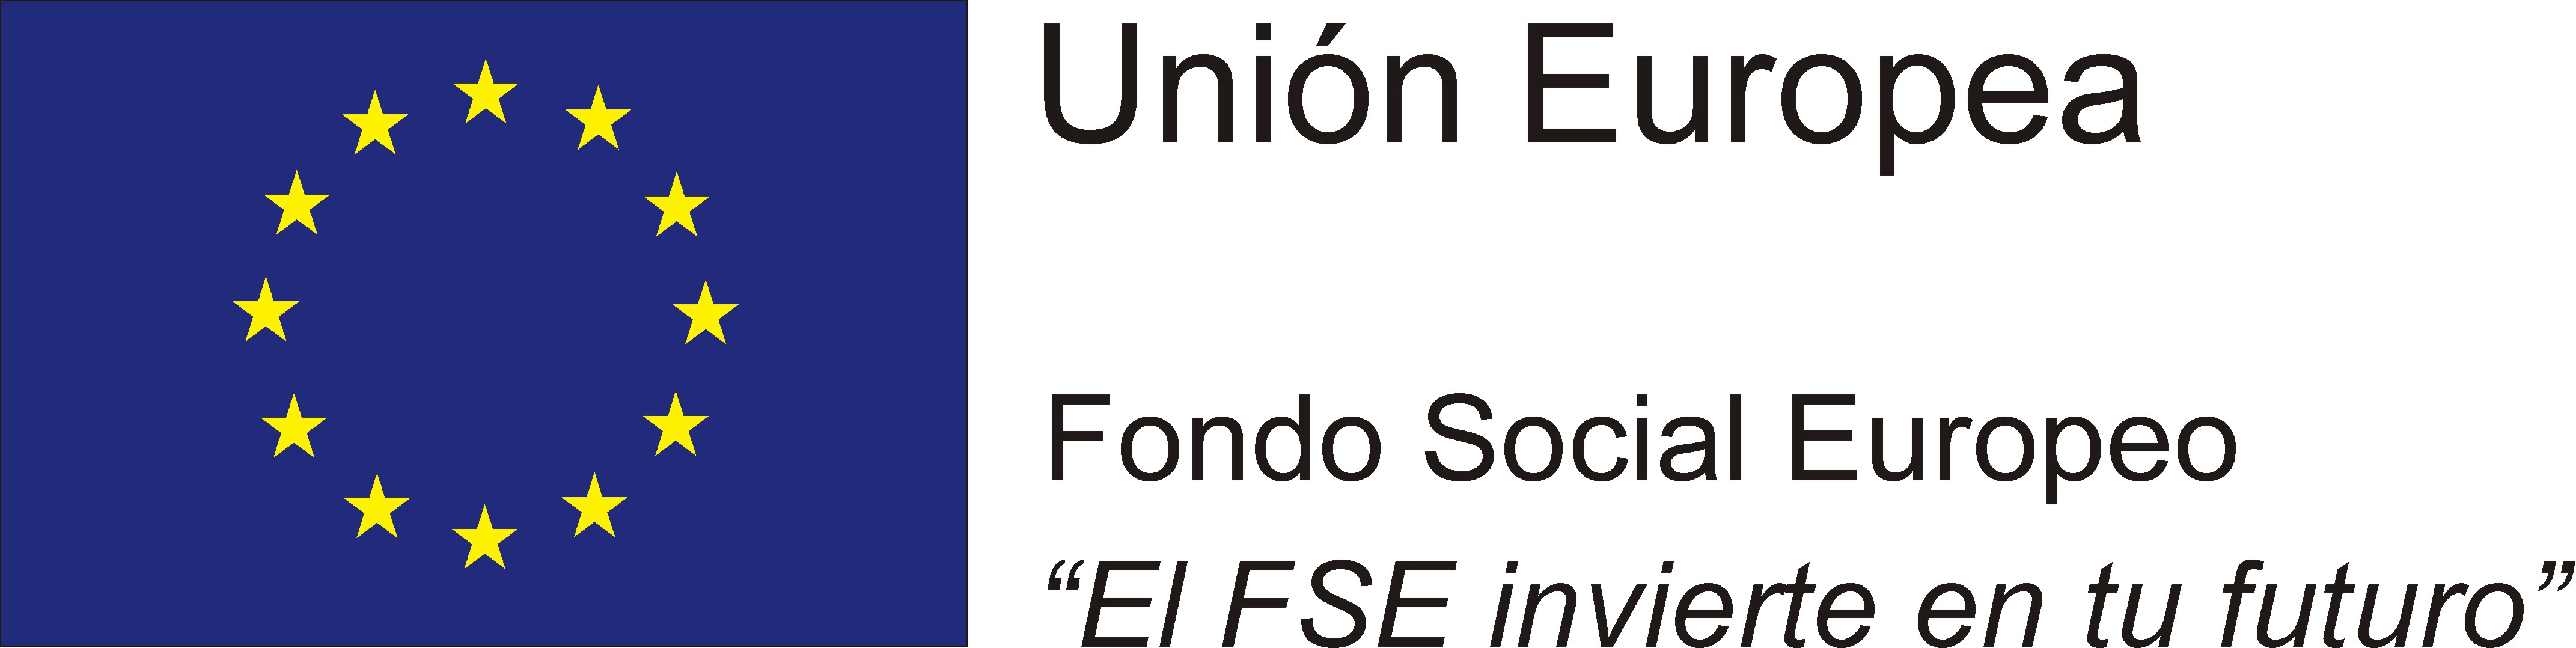 FSE horizontal izda color (PANTONE)